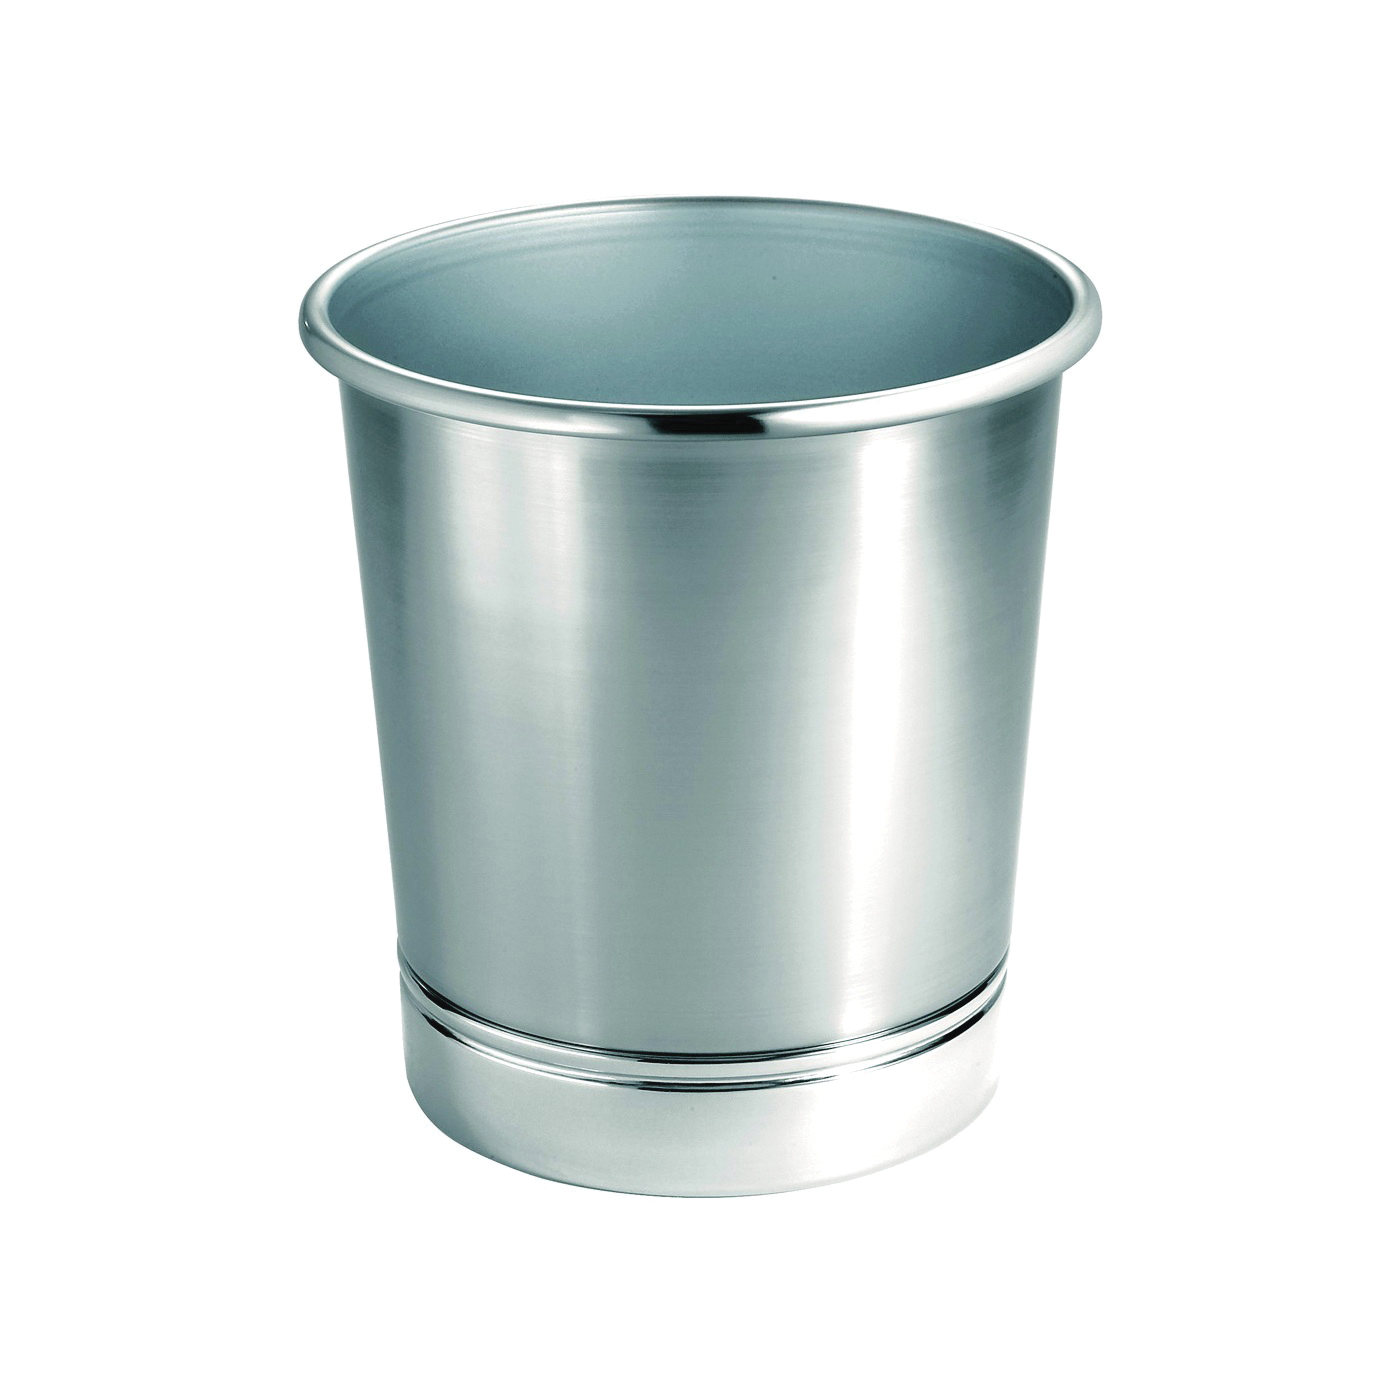 Picture of iDESIGN York Metal 76550 Waste Can, Steel, 9-1/2 in Dia, 10-1/4 in H